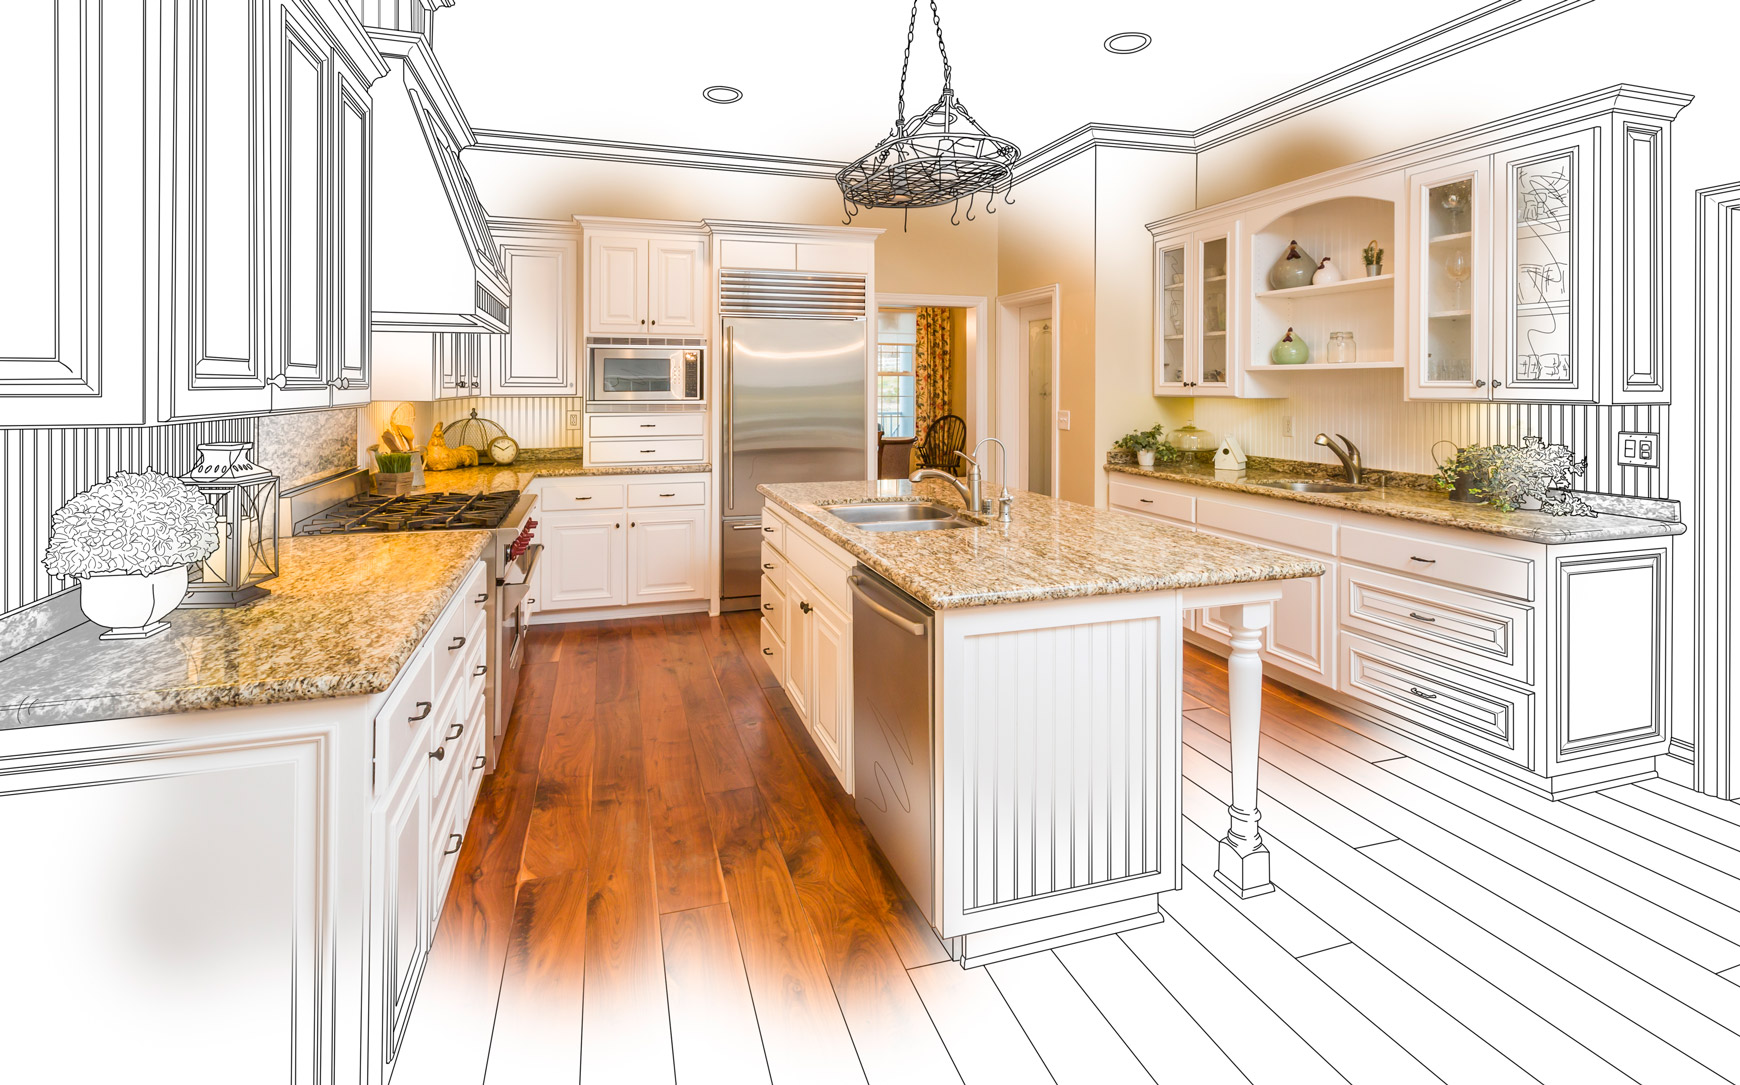 quality custom homes on your lot. first-class remodeling. md   pa   wv